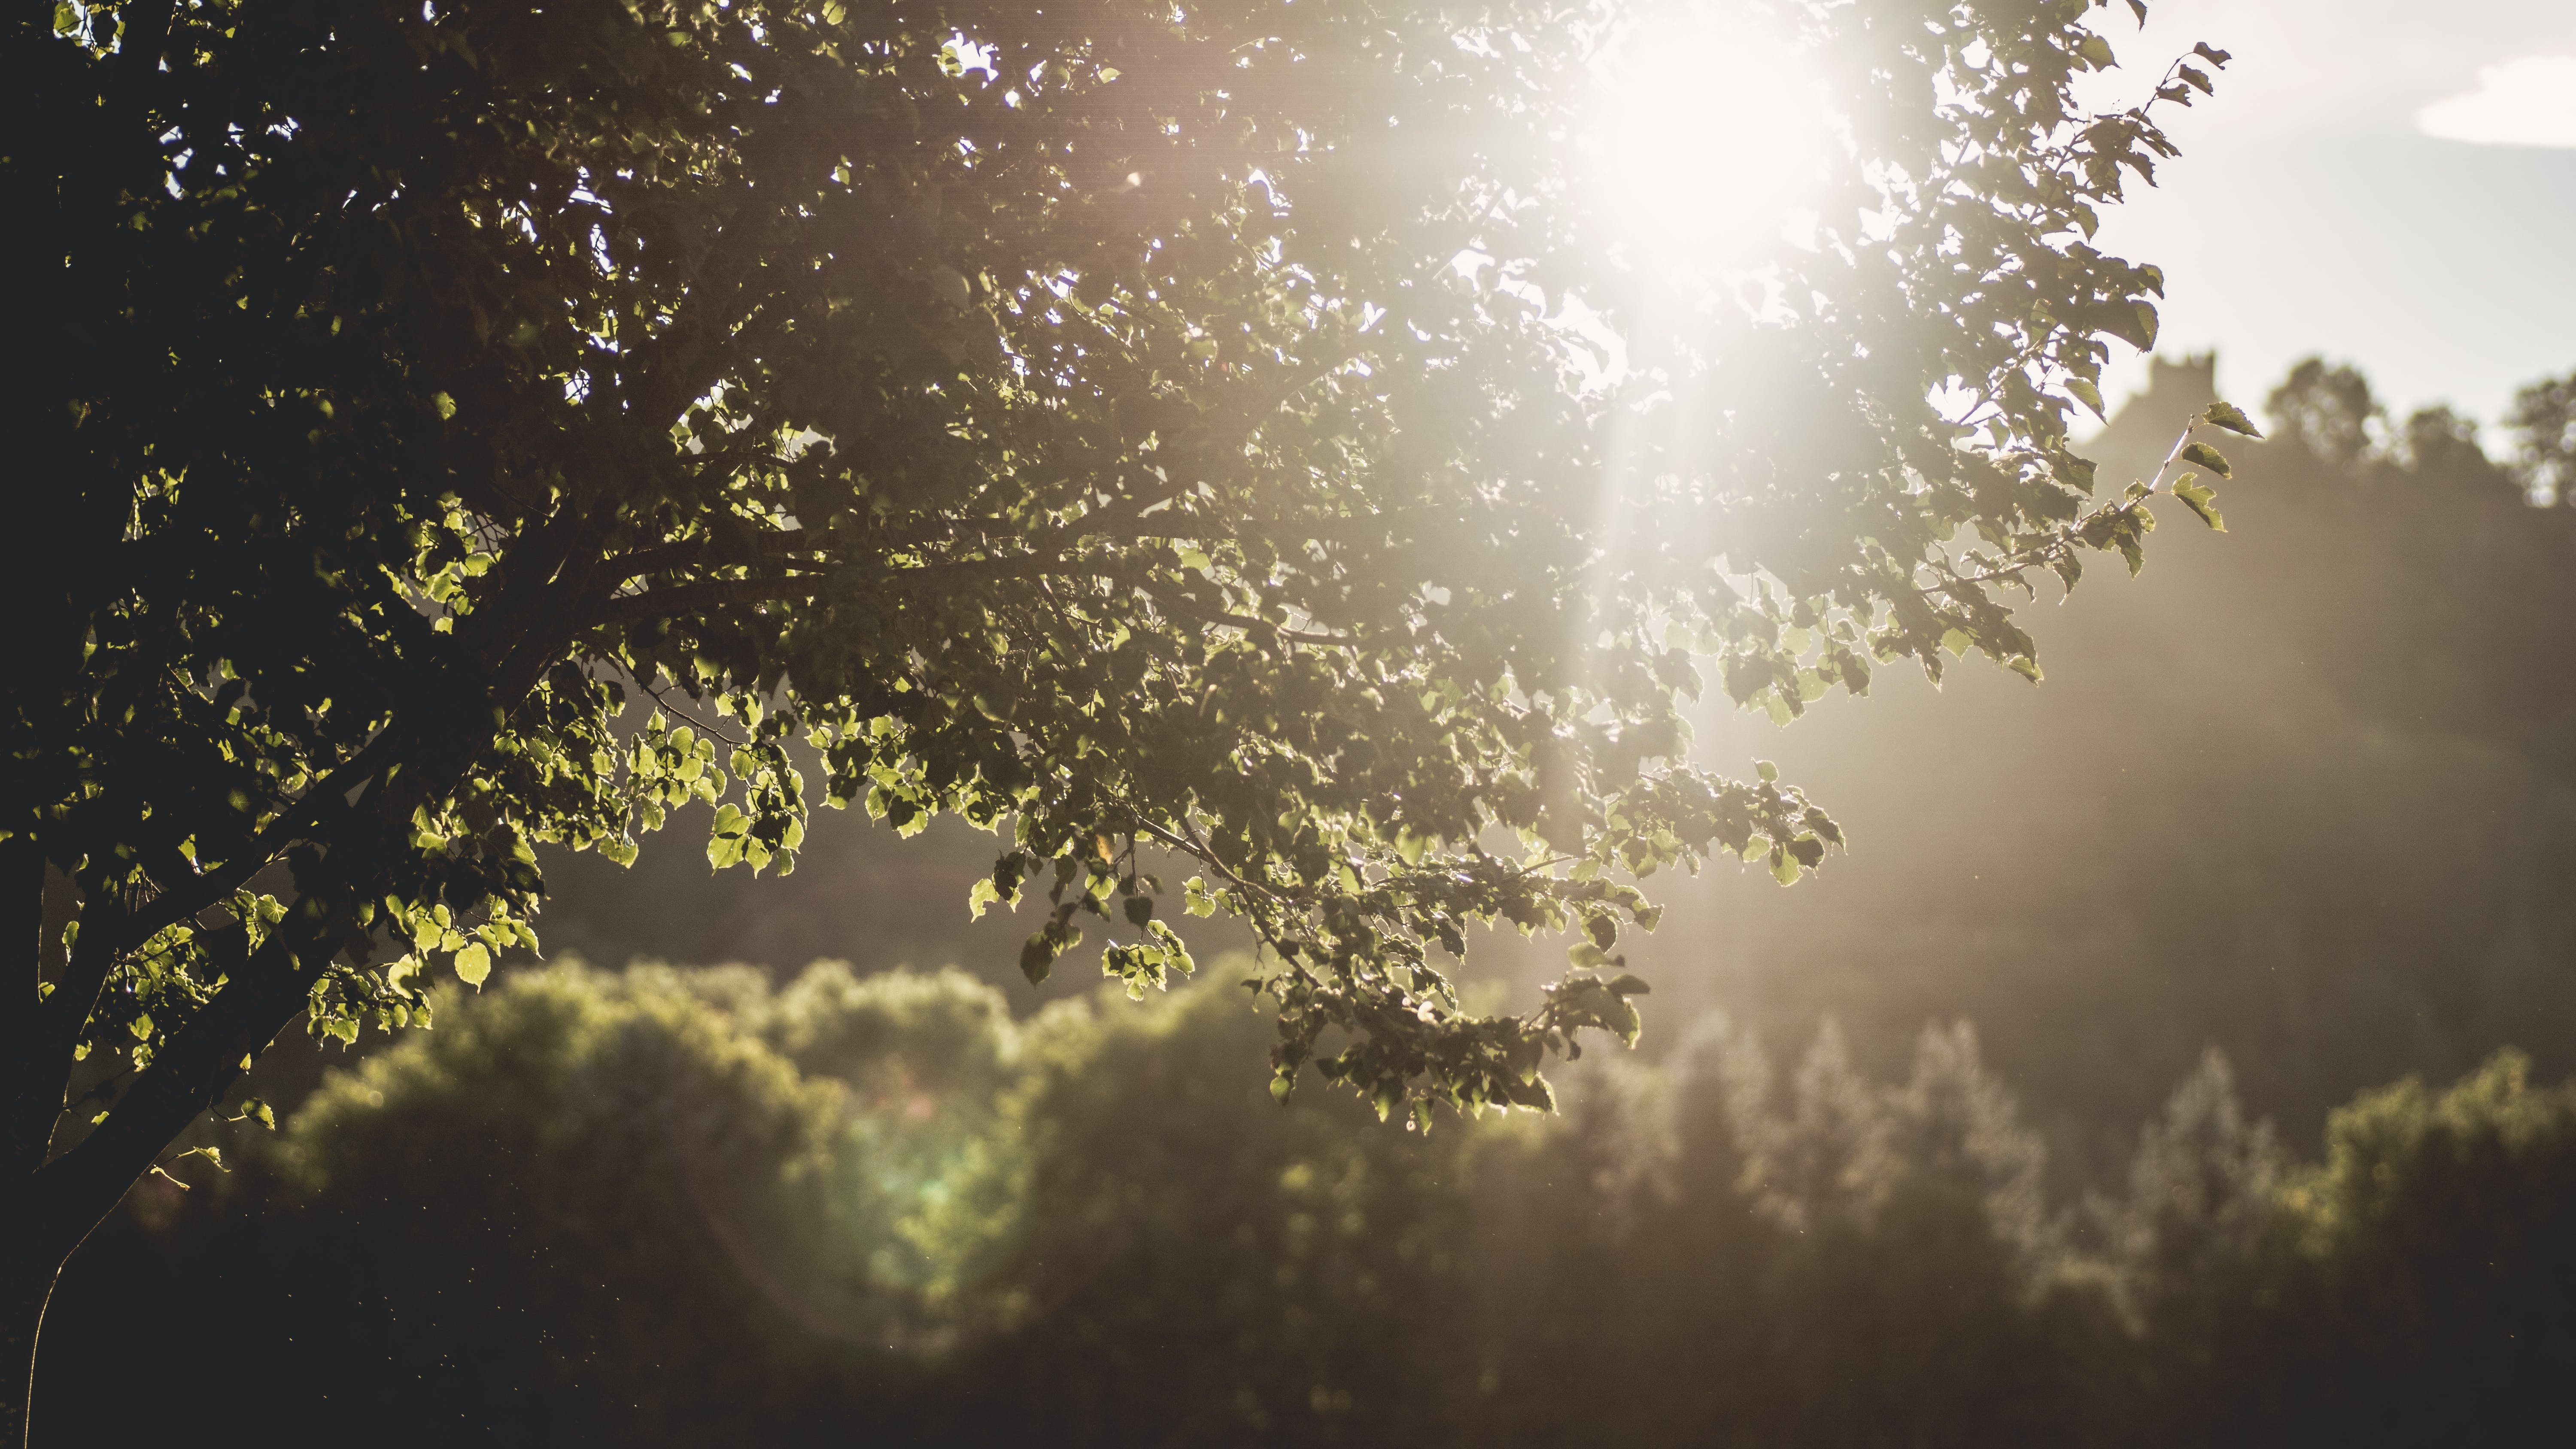 Free stock photo of nature, sun, forest, trees